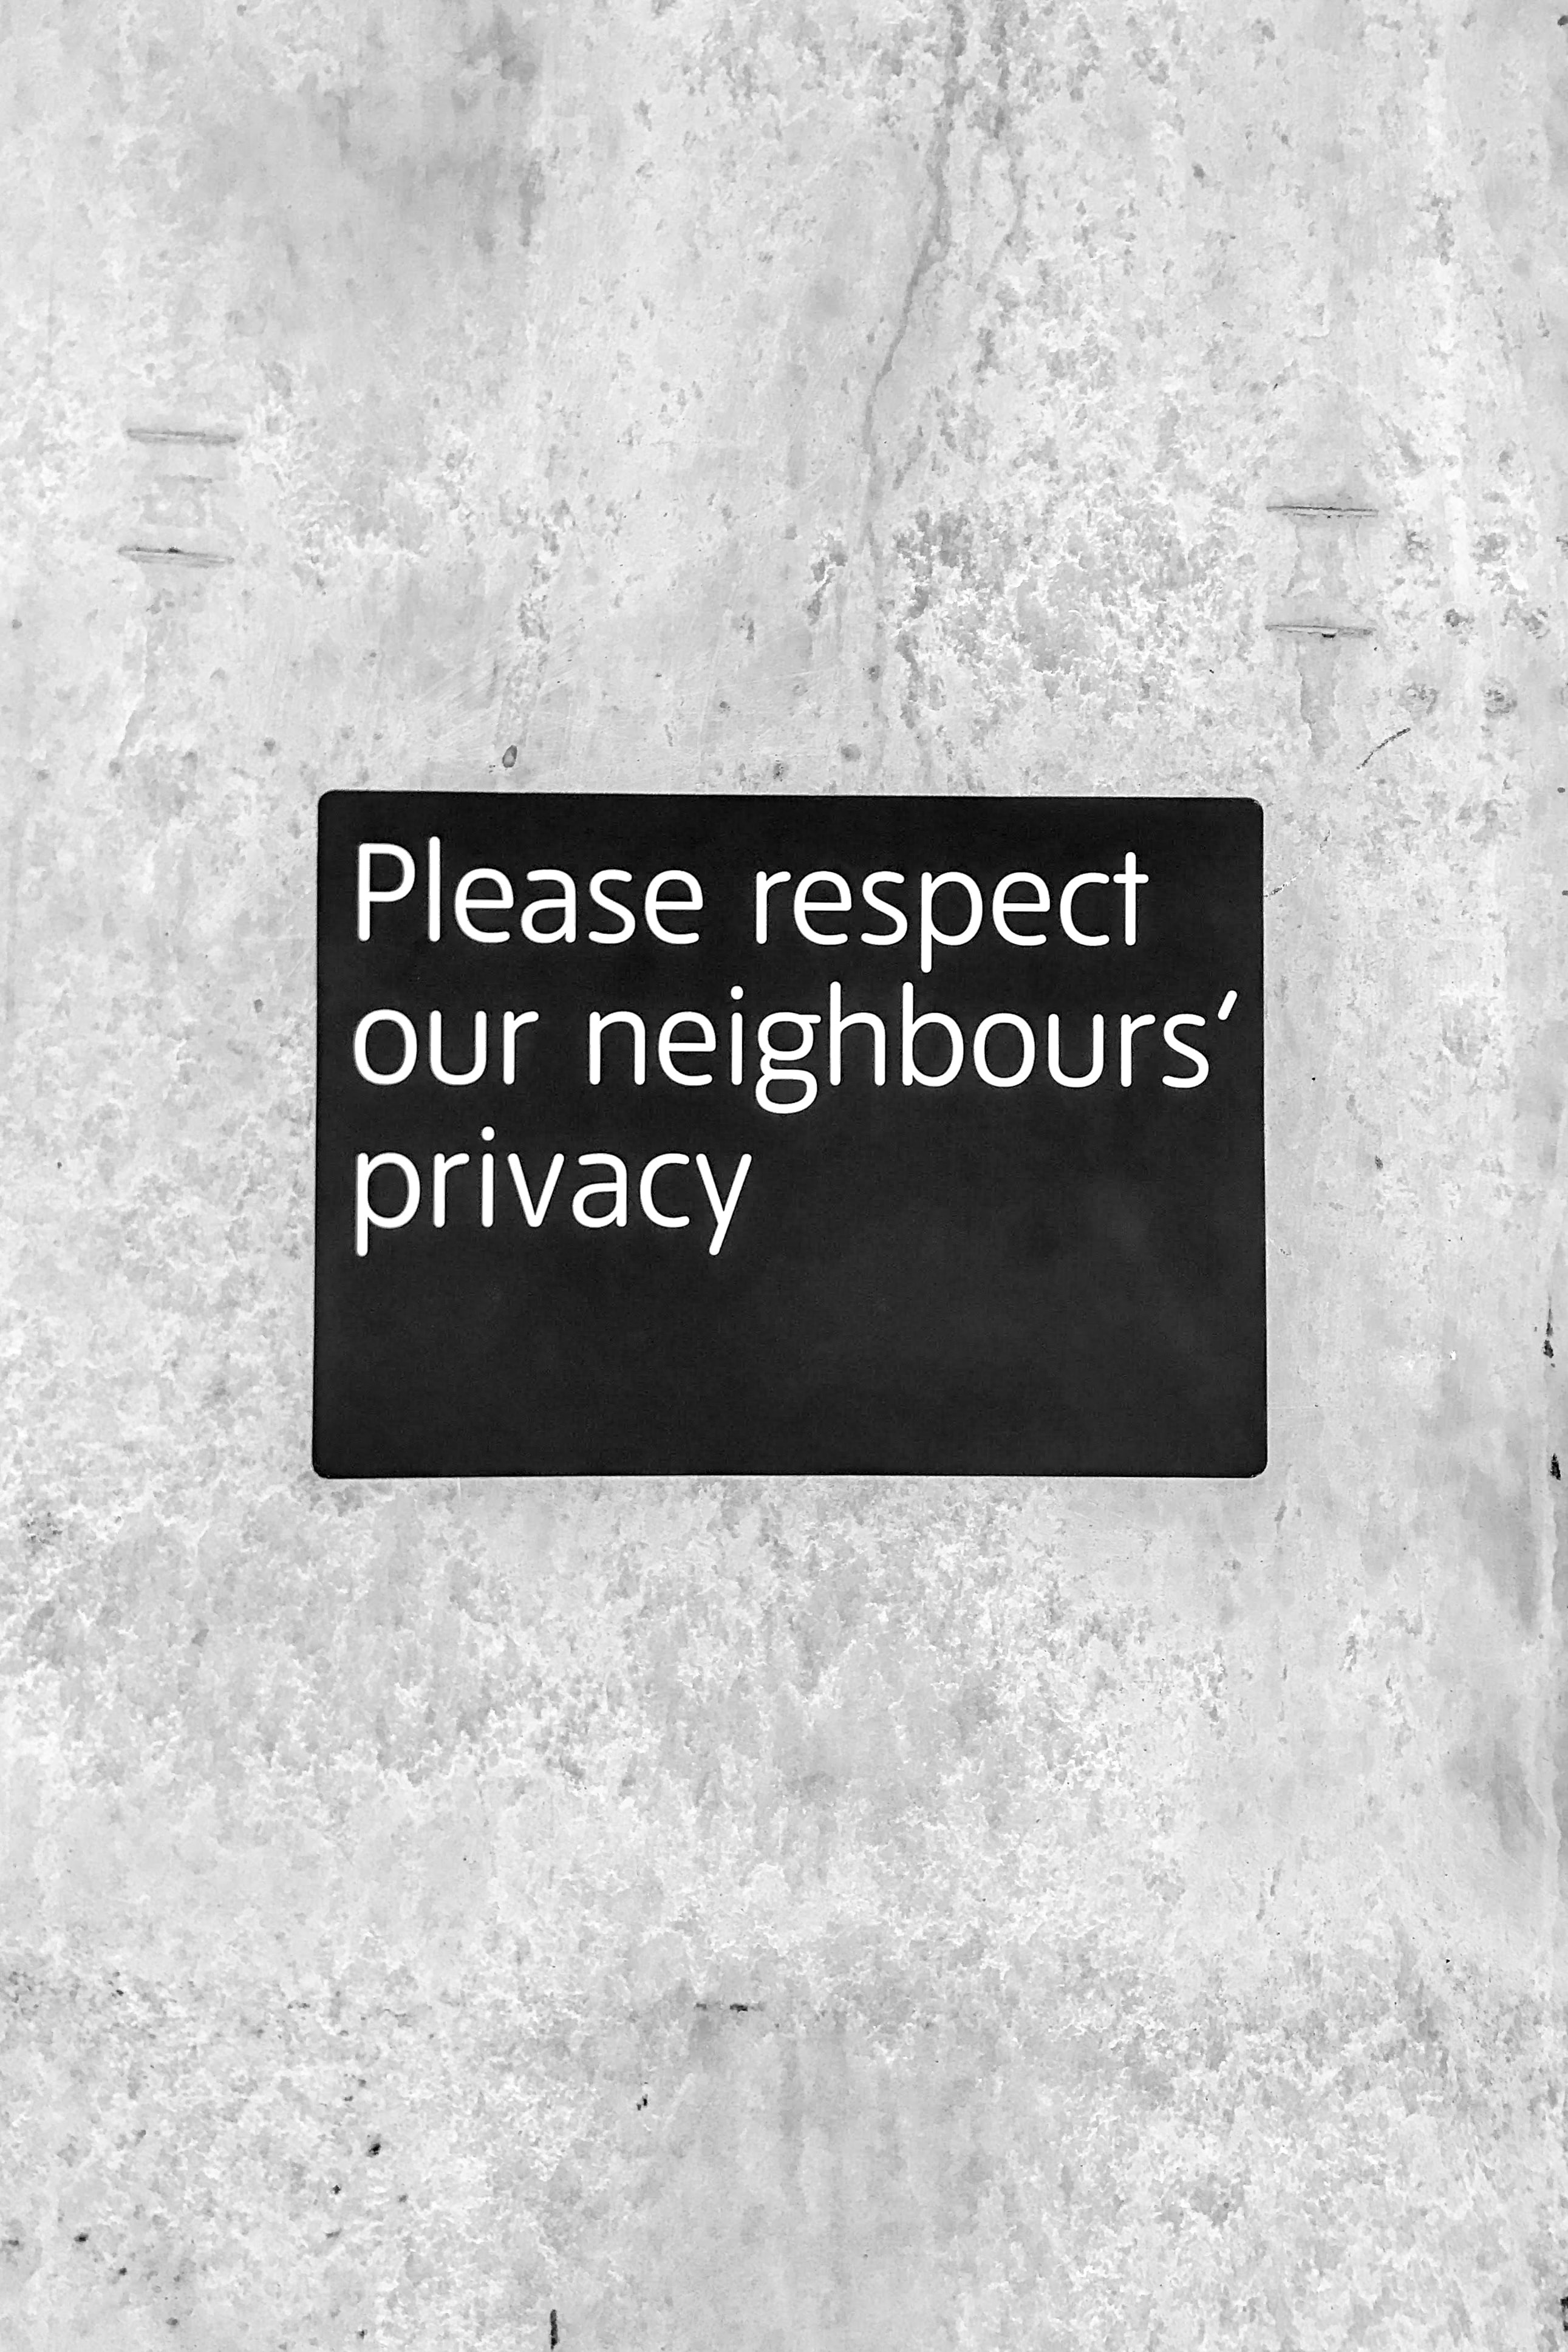 """A black sign with white text on a wall that reads """"Please respect our neighbors' privacy""""."""